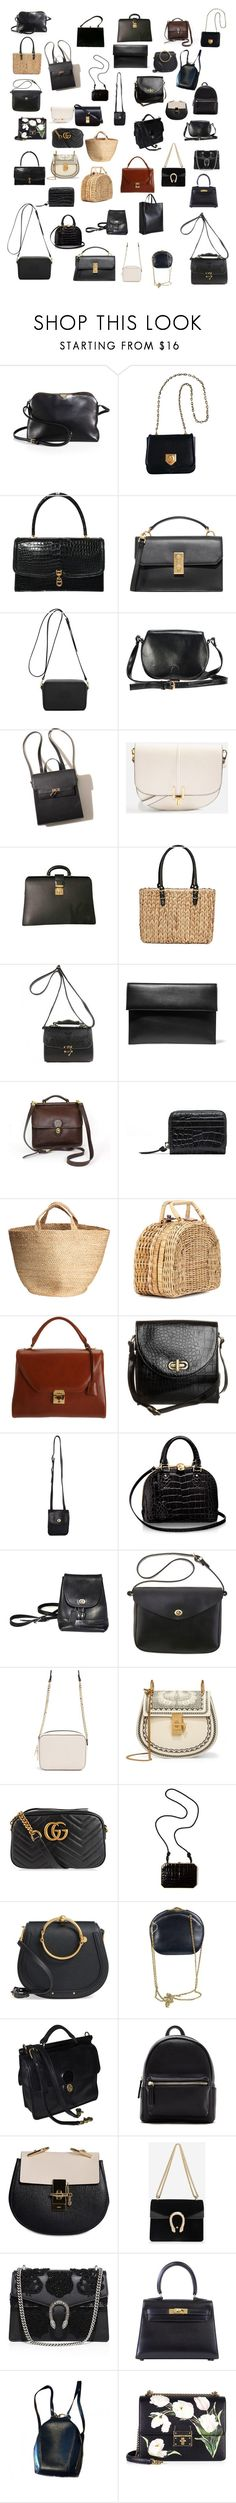 """""""my bag wishlist."""" by abigailshanice ❤ liked on Polyvore featuring The Row, VIcenza, Hermès, Flynn, Mulberry, Topshop, Louis Vuitton, Straw Studios, Marni and Kayu"""